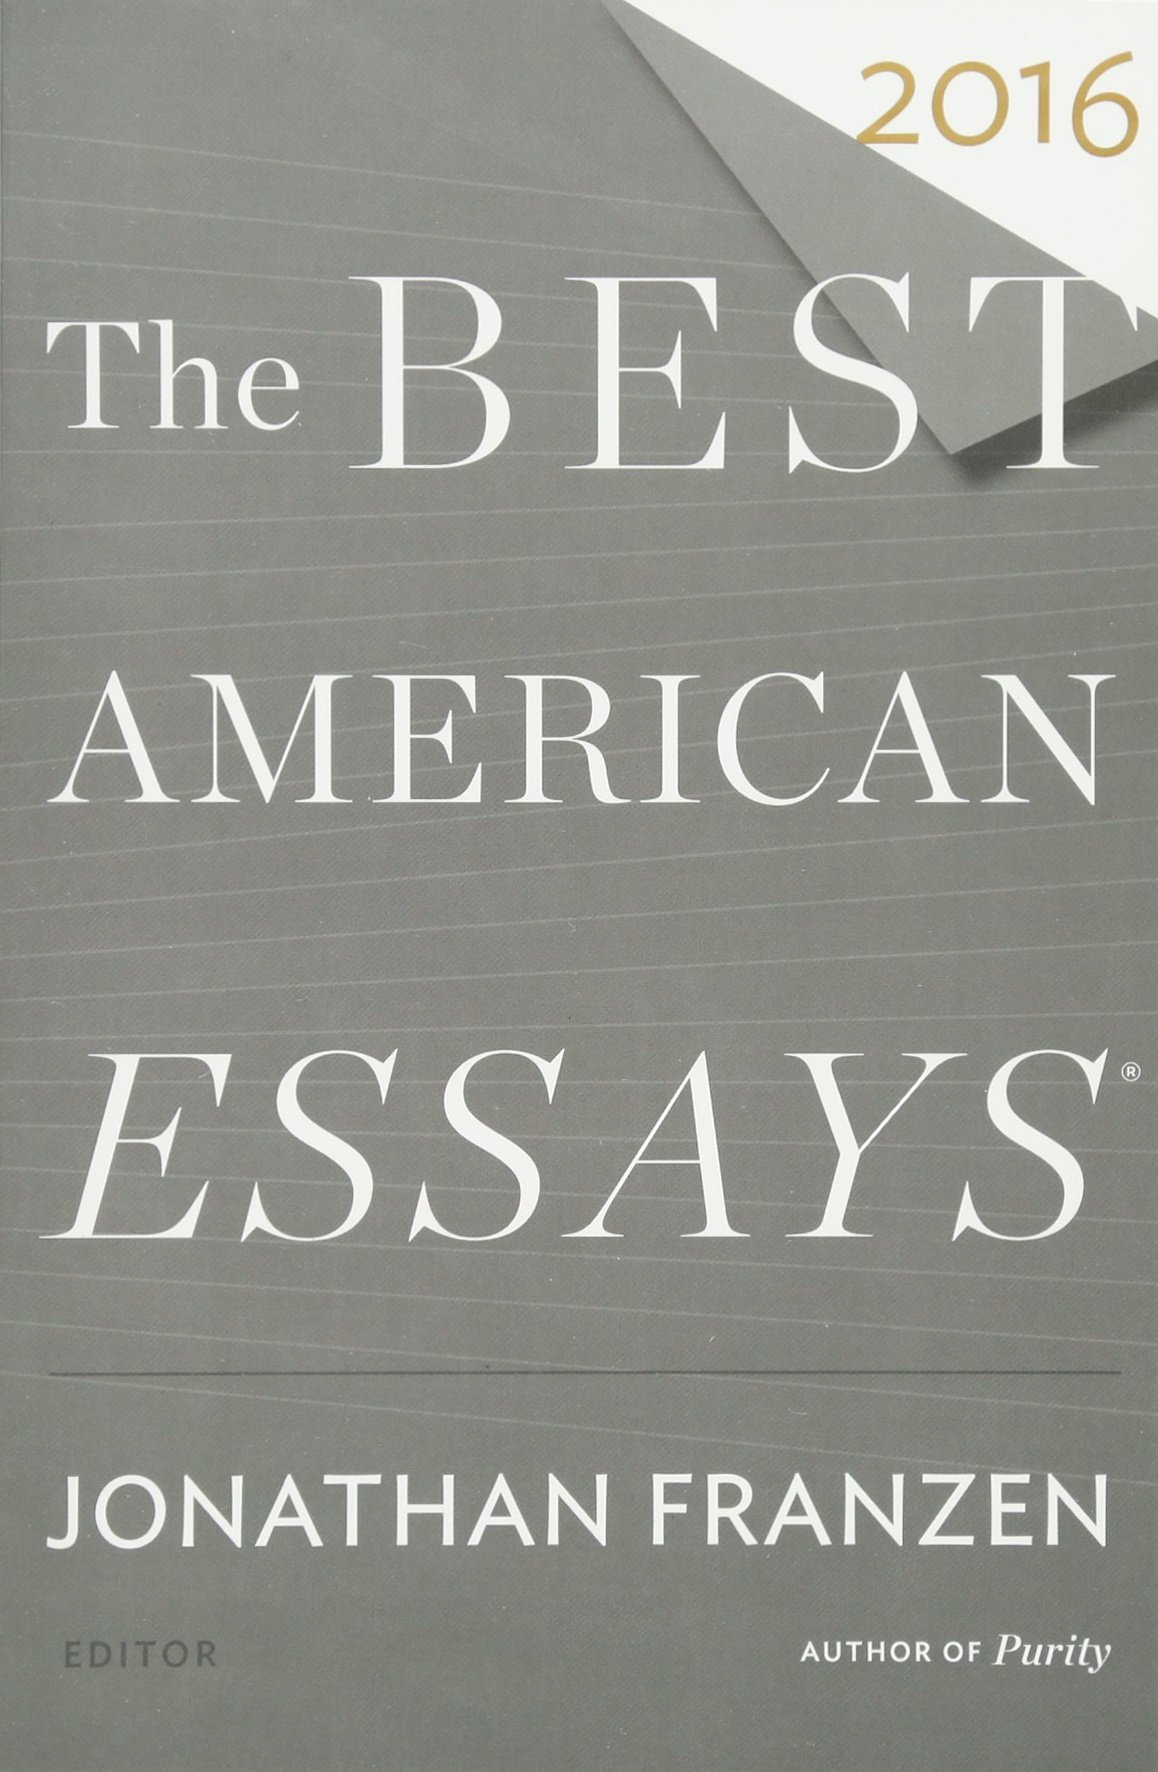 005 The Best American Essays Essay Example Wonderful 2013 Pdf Download Of Century Sparknotes 2017 Full